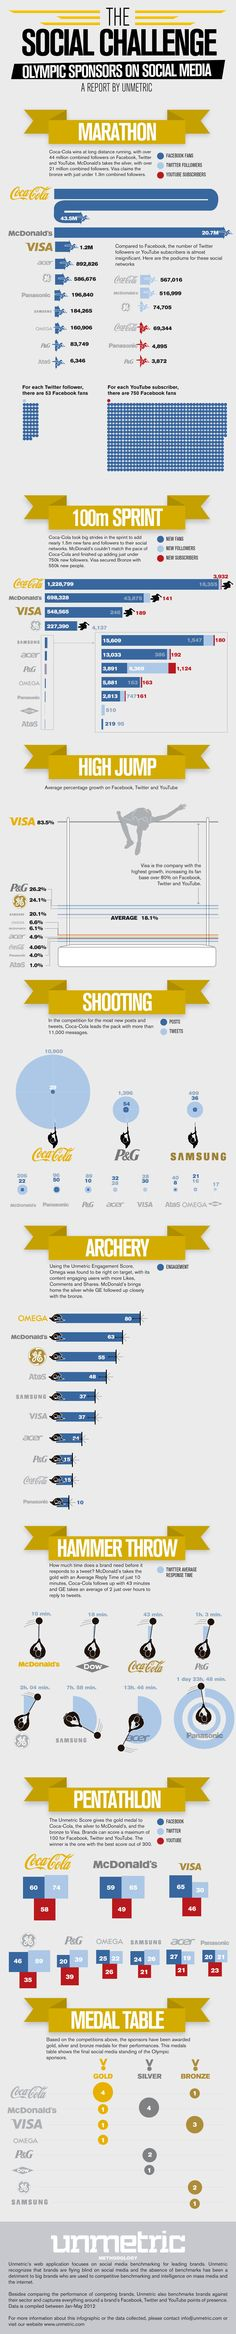 Social Media, Marketing: Brand Sponsors And The Olympics On Social Media - Infographic